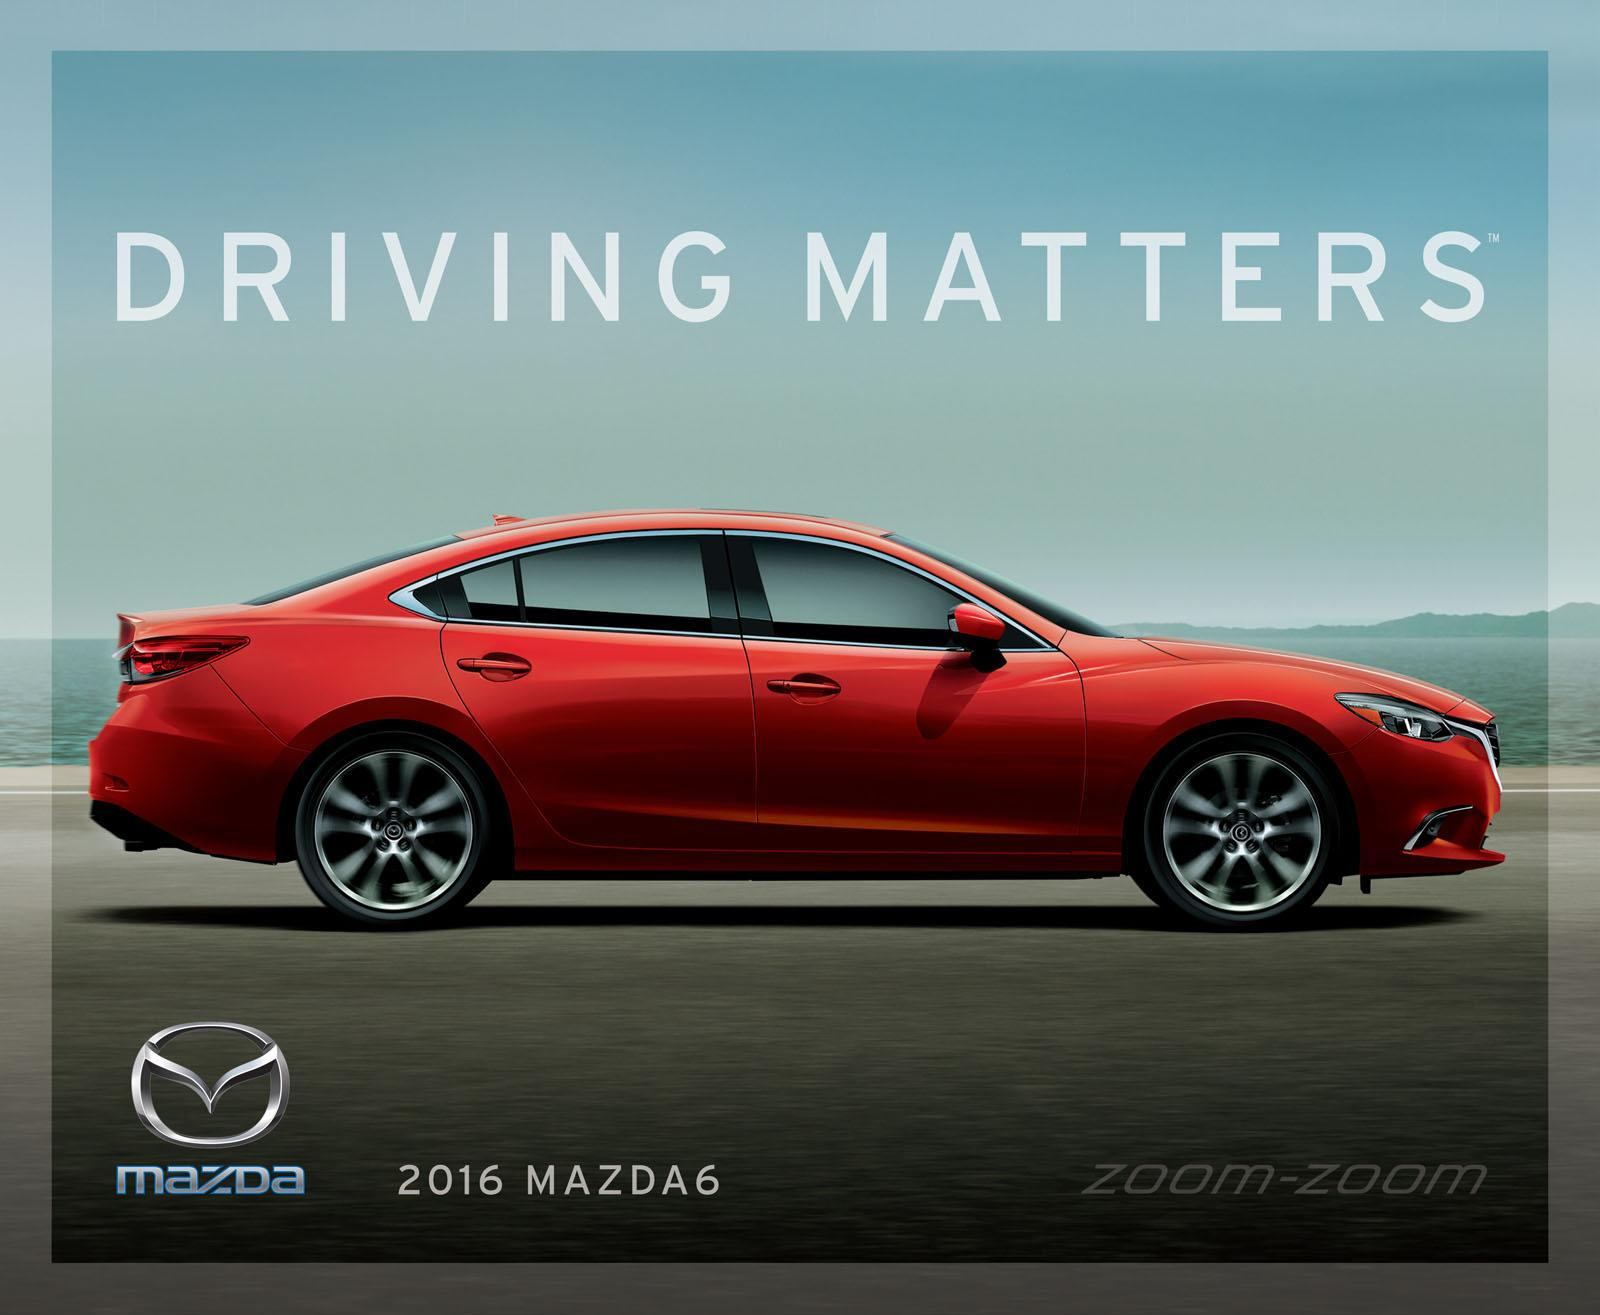 Mazda Launches 'Driving Matters' Ad Campaign In The USA